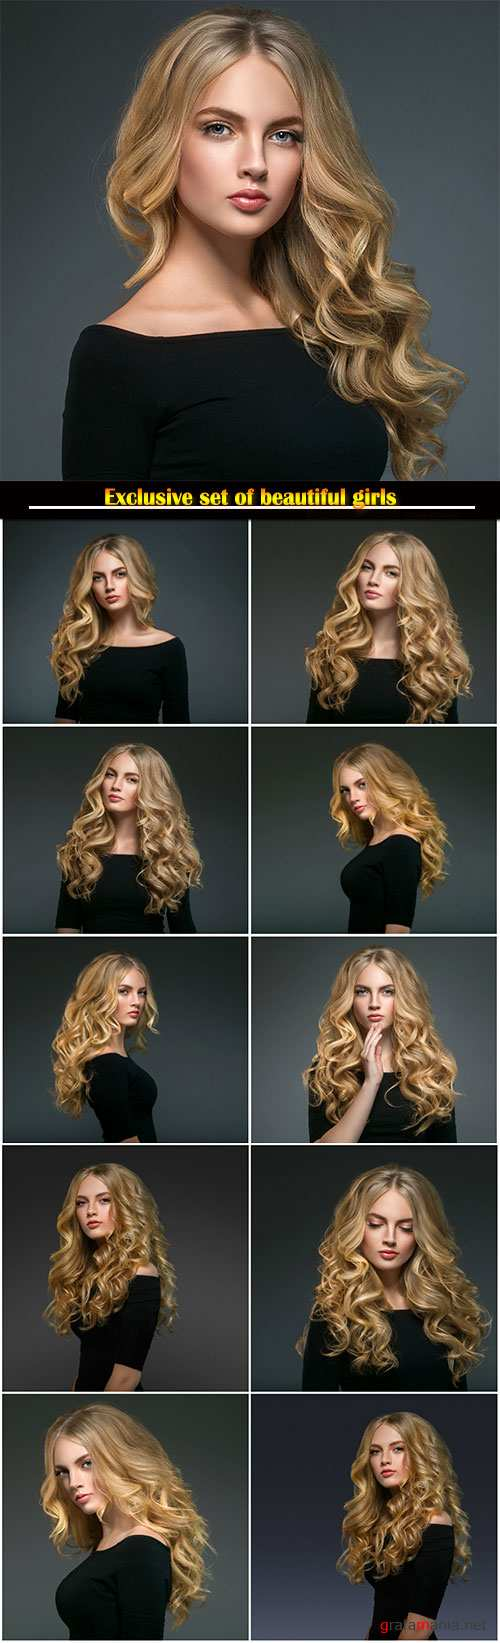 Beauty woman face portrait, model girl with curly long beauty hair